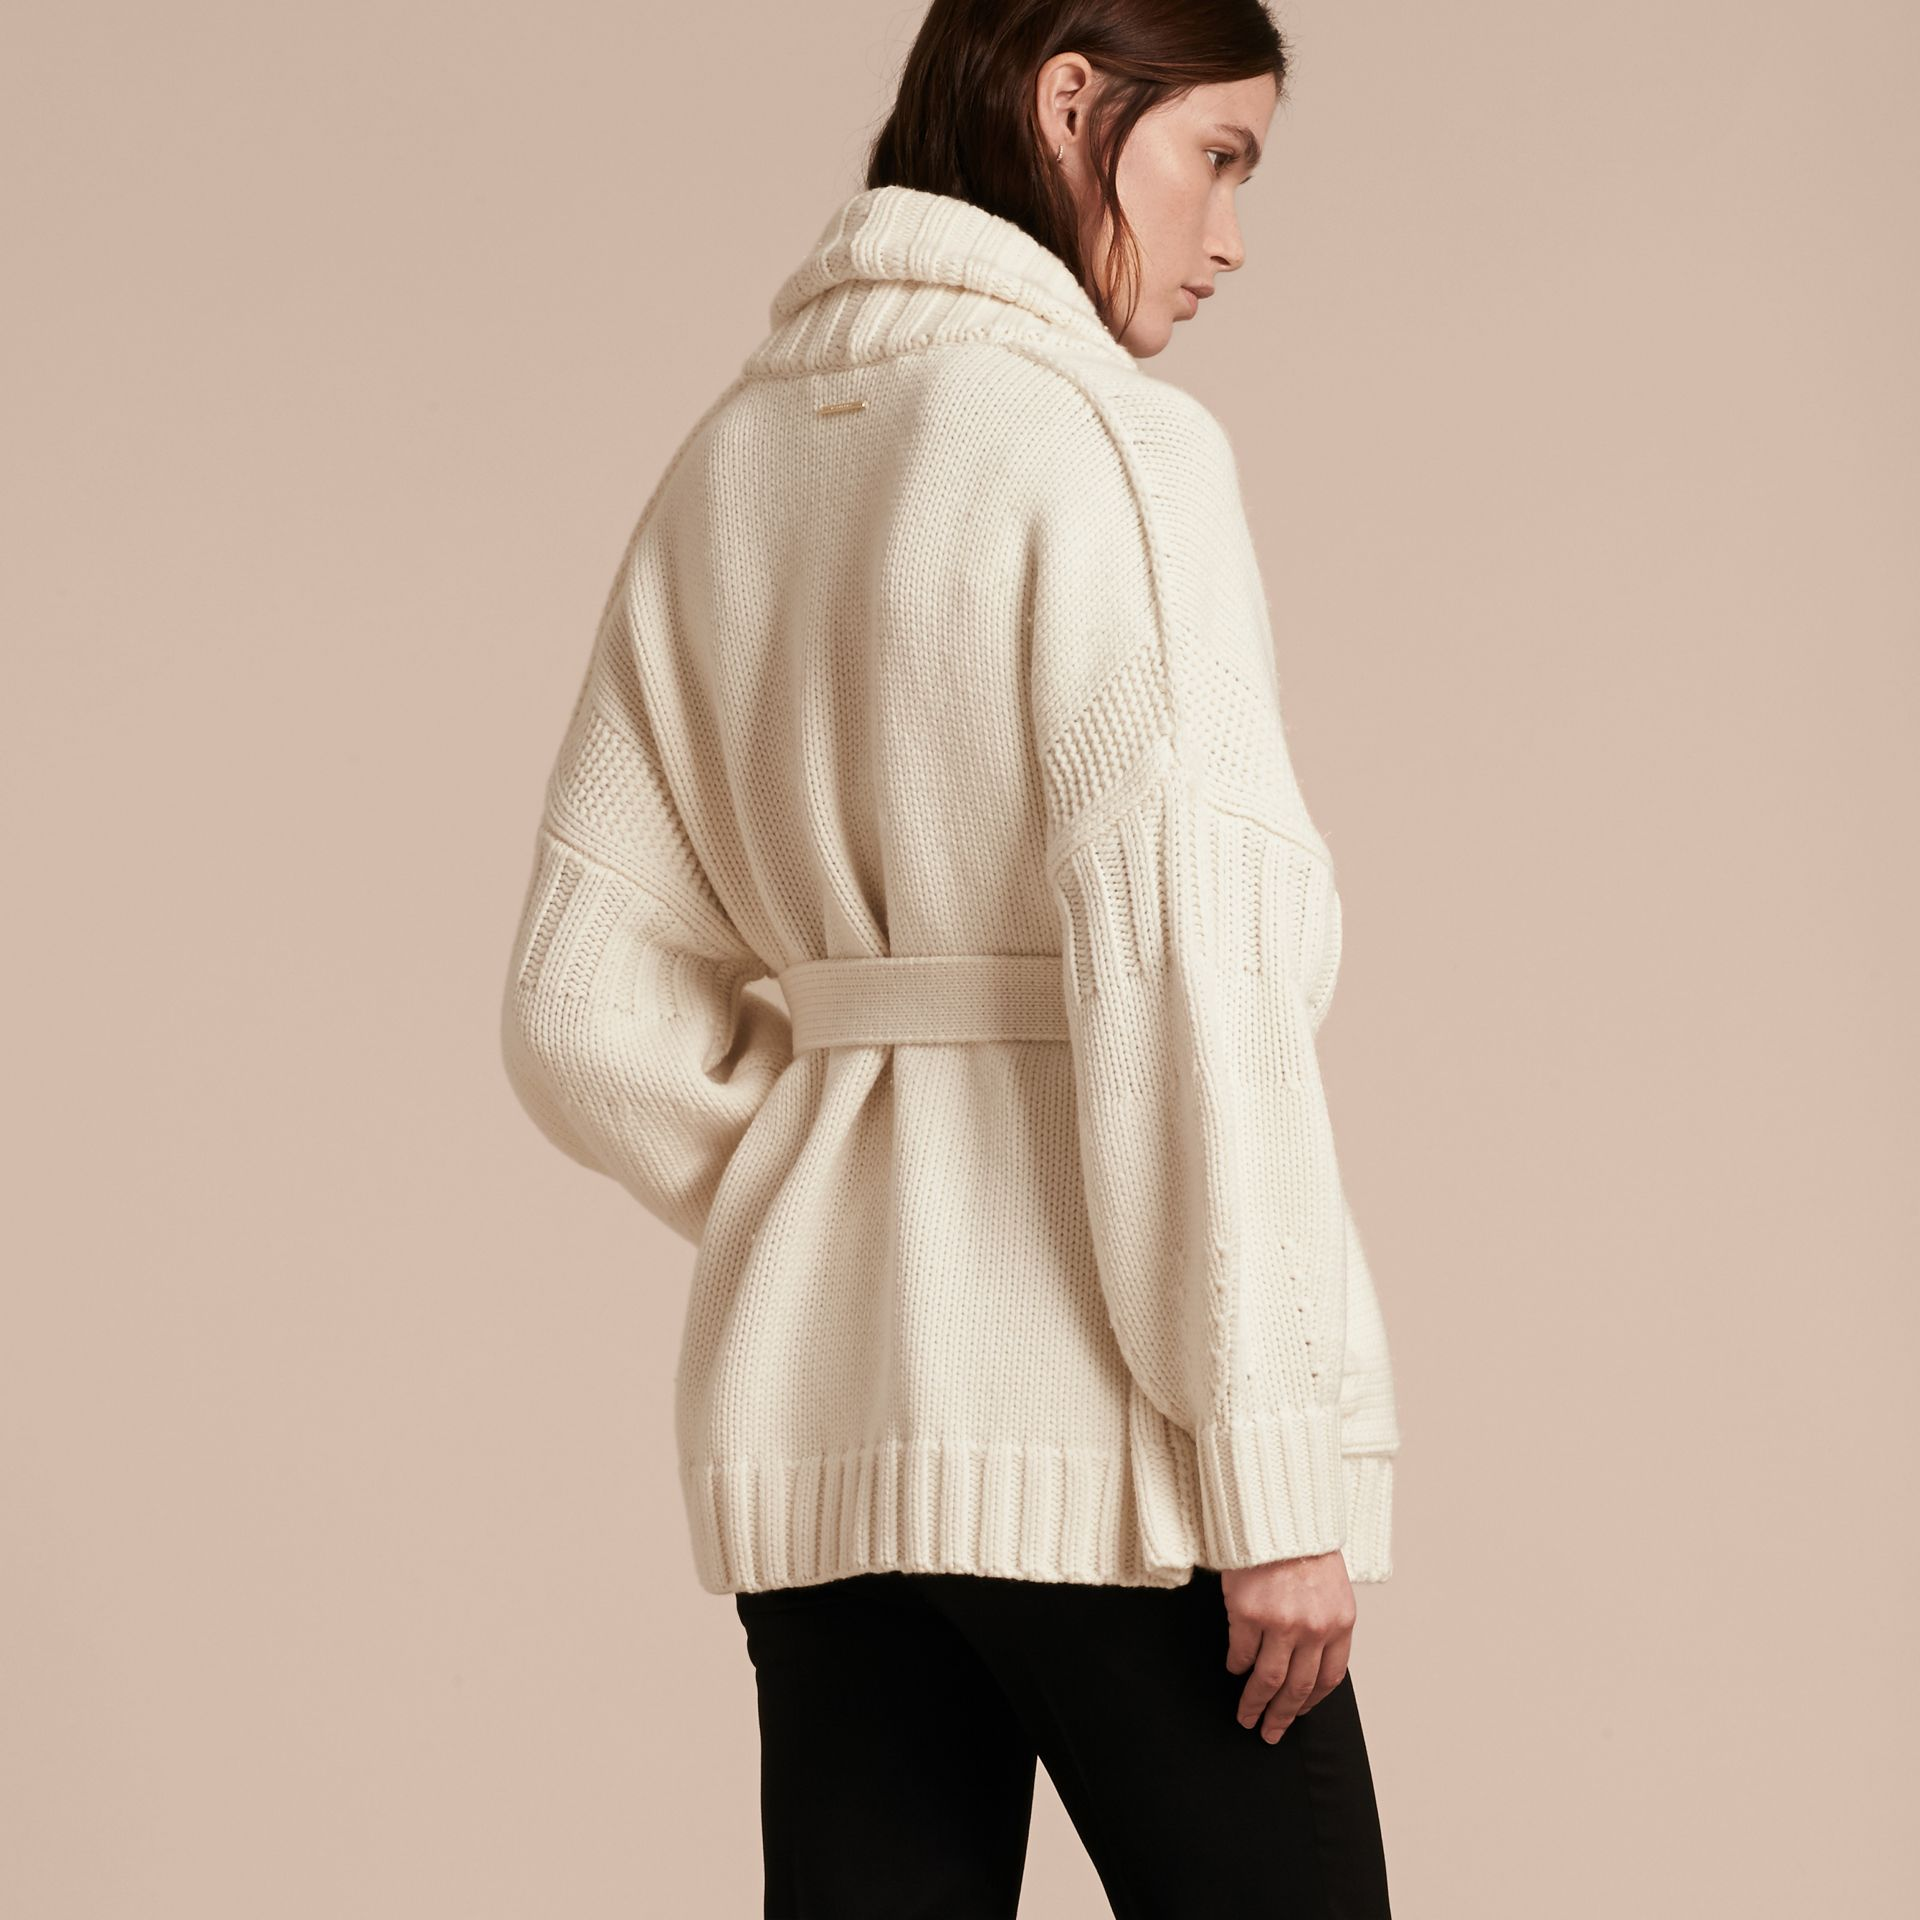 Natural white Knitted Wool Cashmere Belted Cardigan Jacket Natural White - gallery image 3